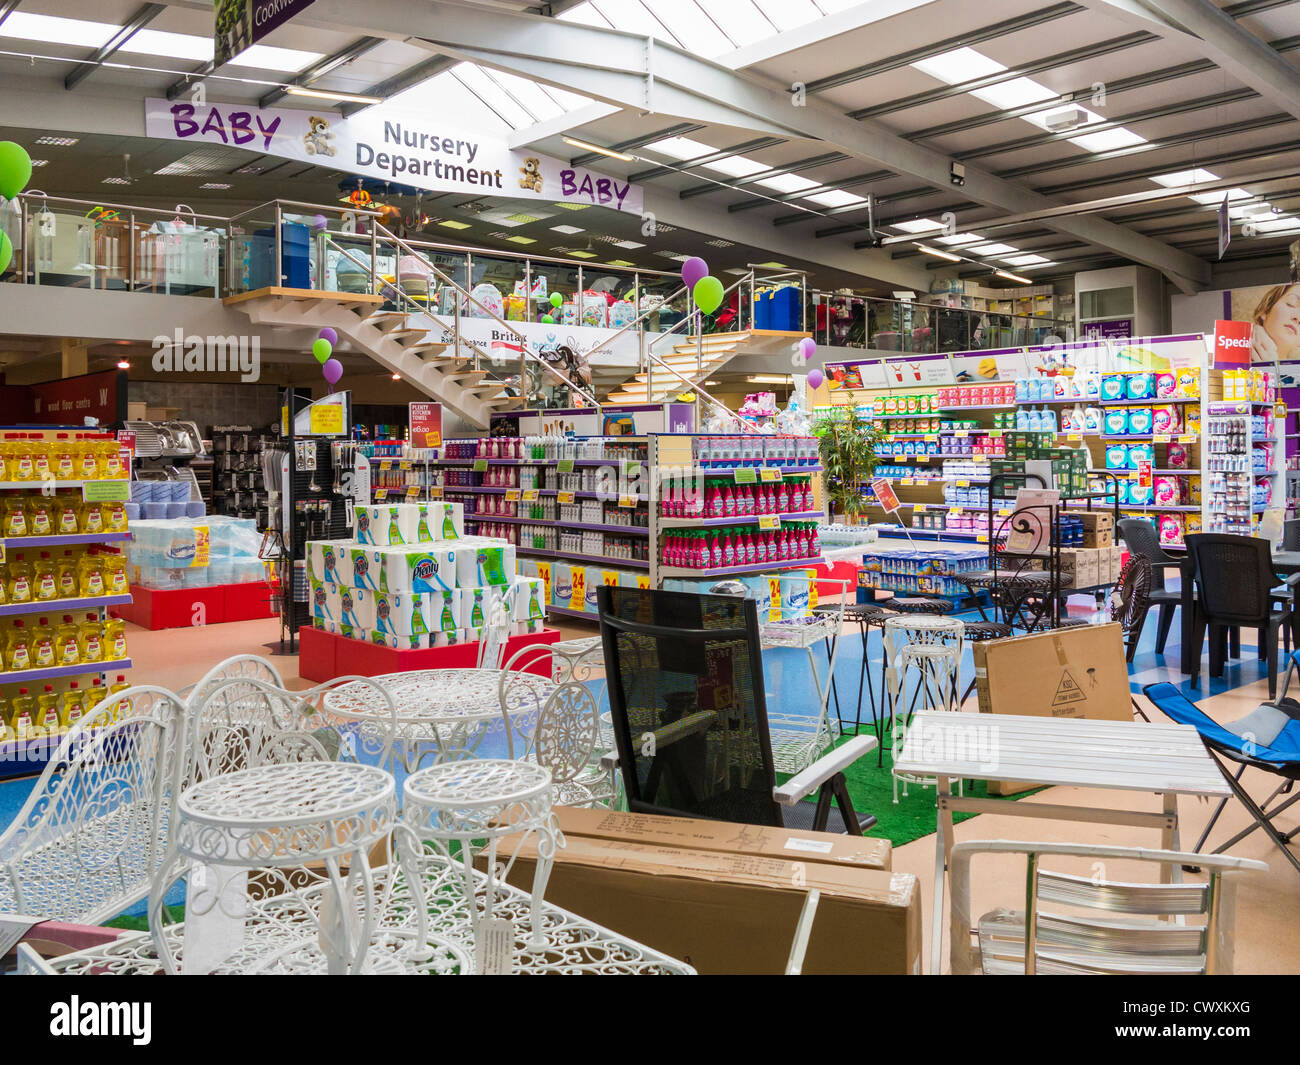 Magasin de bricolage Photo Stock